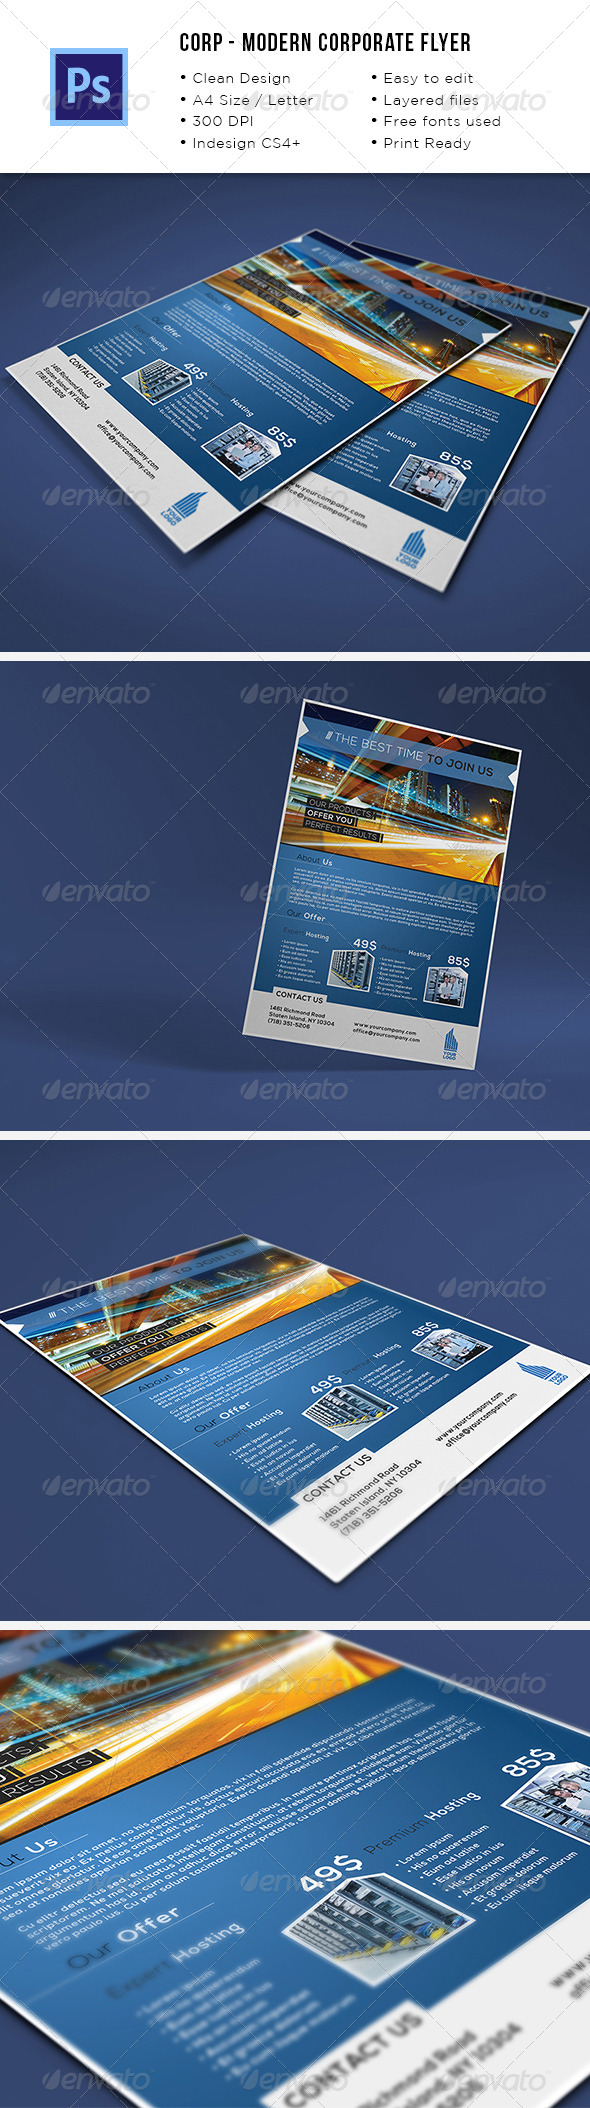 Modern Corporate A4/Letter Flyer - Corporate Flyers